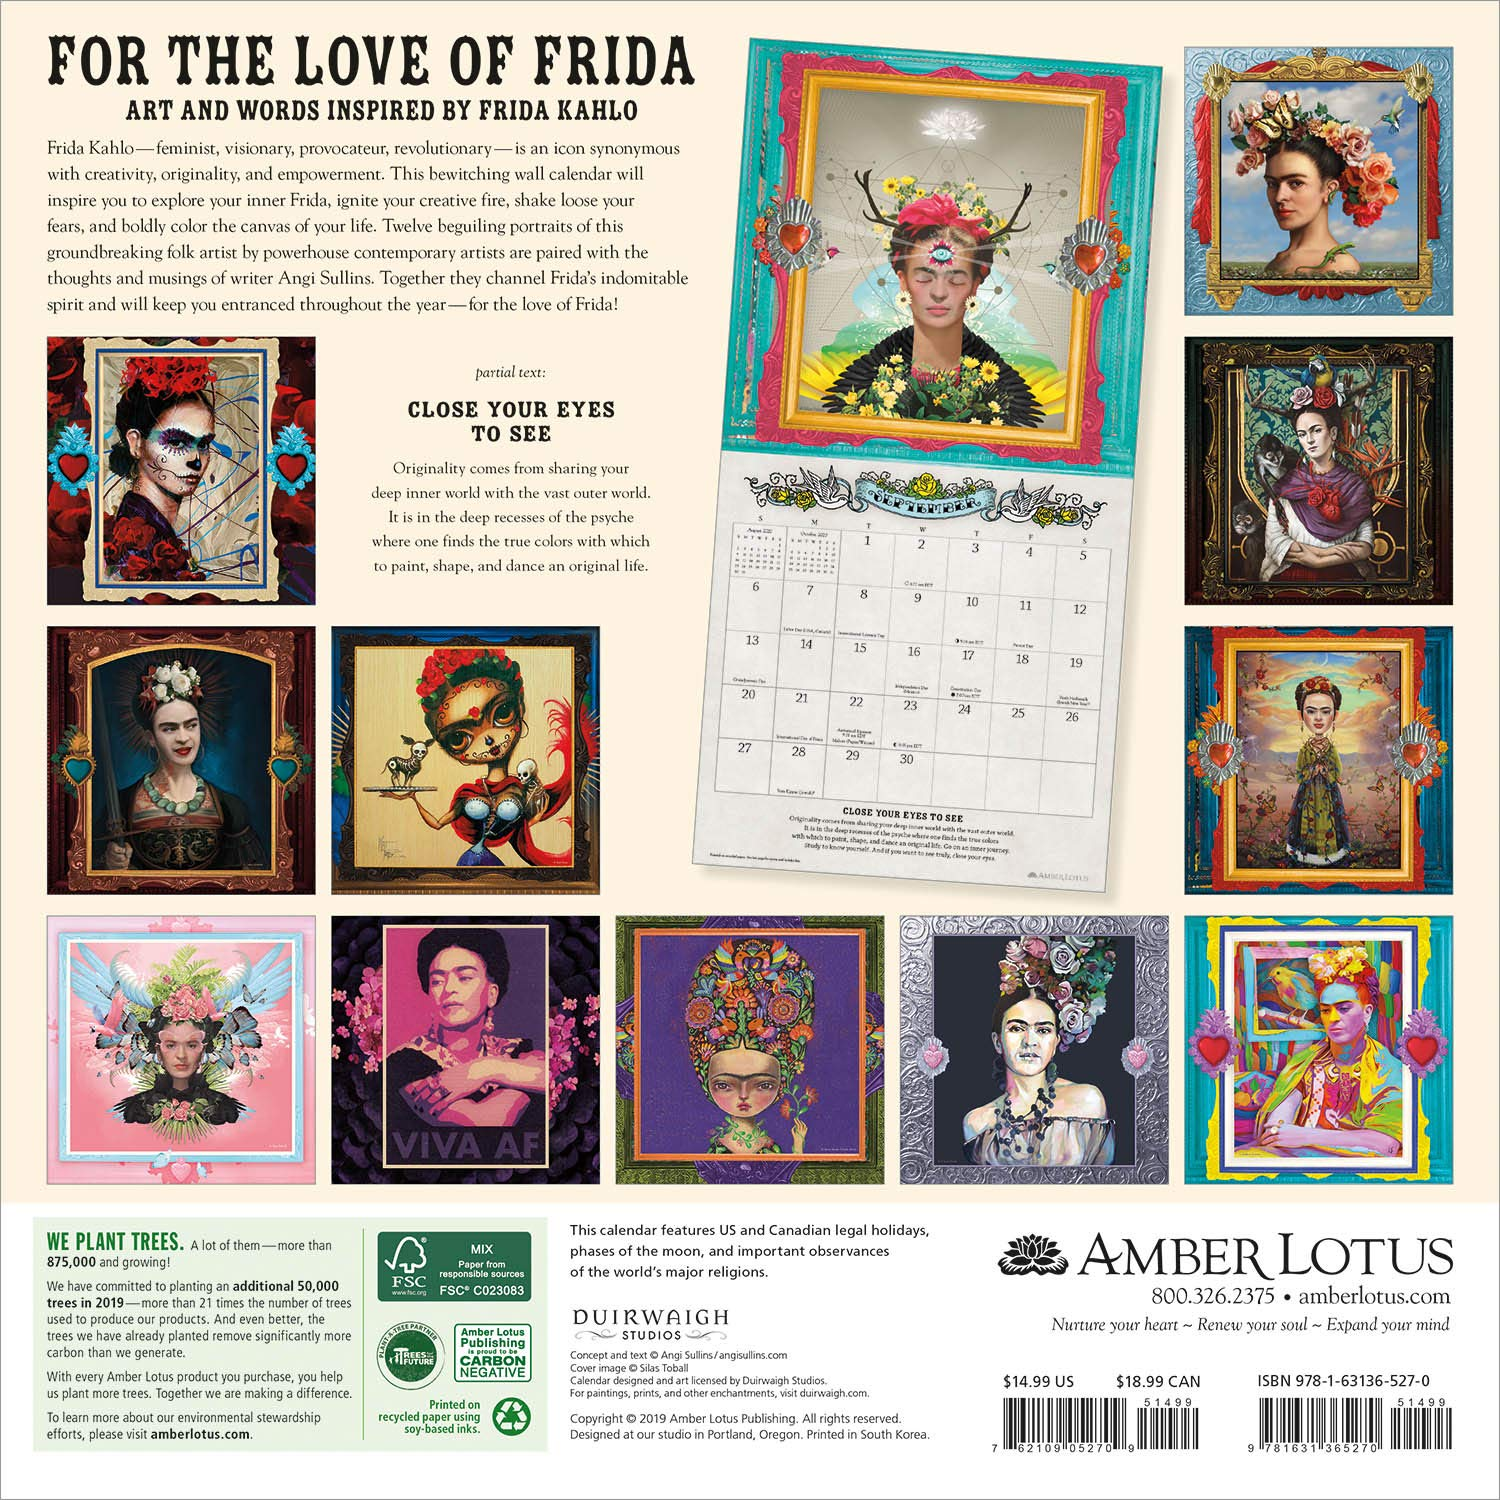 Danita Art is part of the roster of 12 amazing artists that were invited to participate on this 2020 calendar that celebrates Frida Kahlo as seen trough our eyes. Each artist has a very unique vision of Frida and we come together in a beautiful display of art for the upcoming 2020.